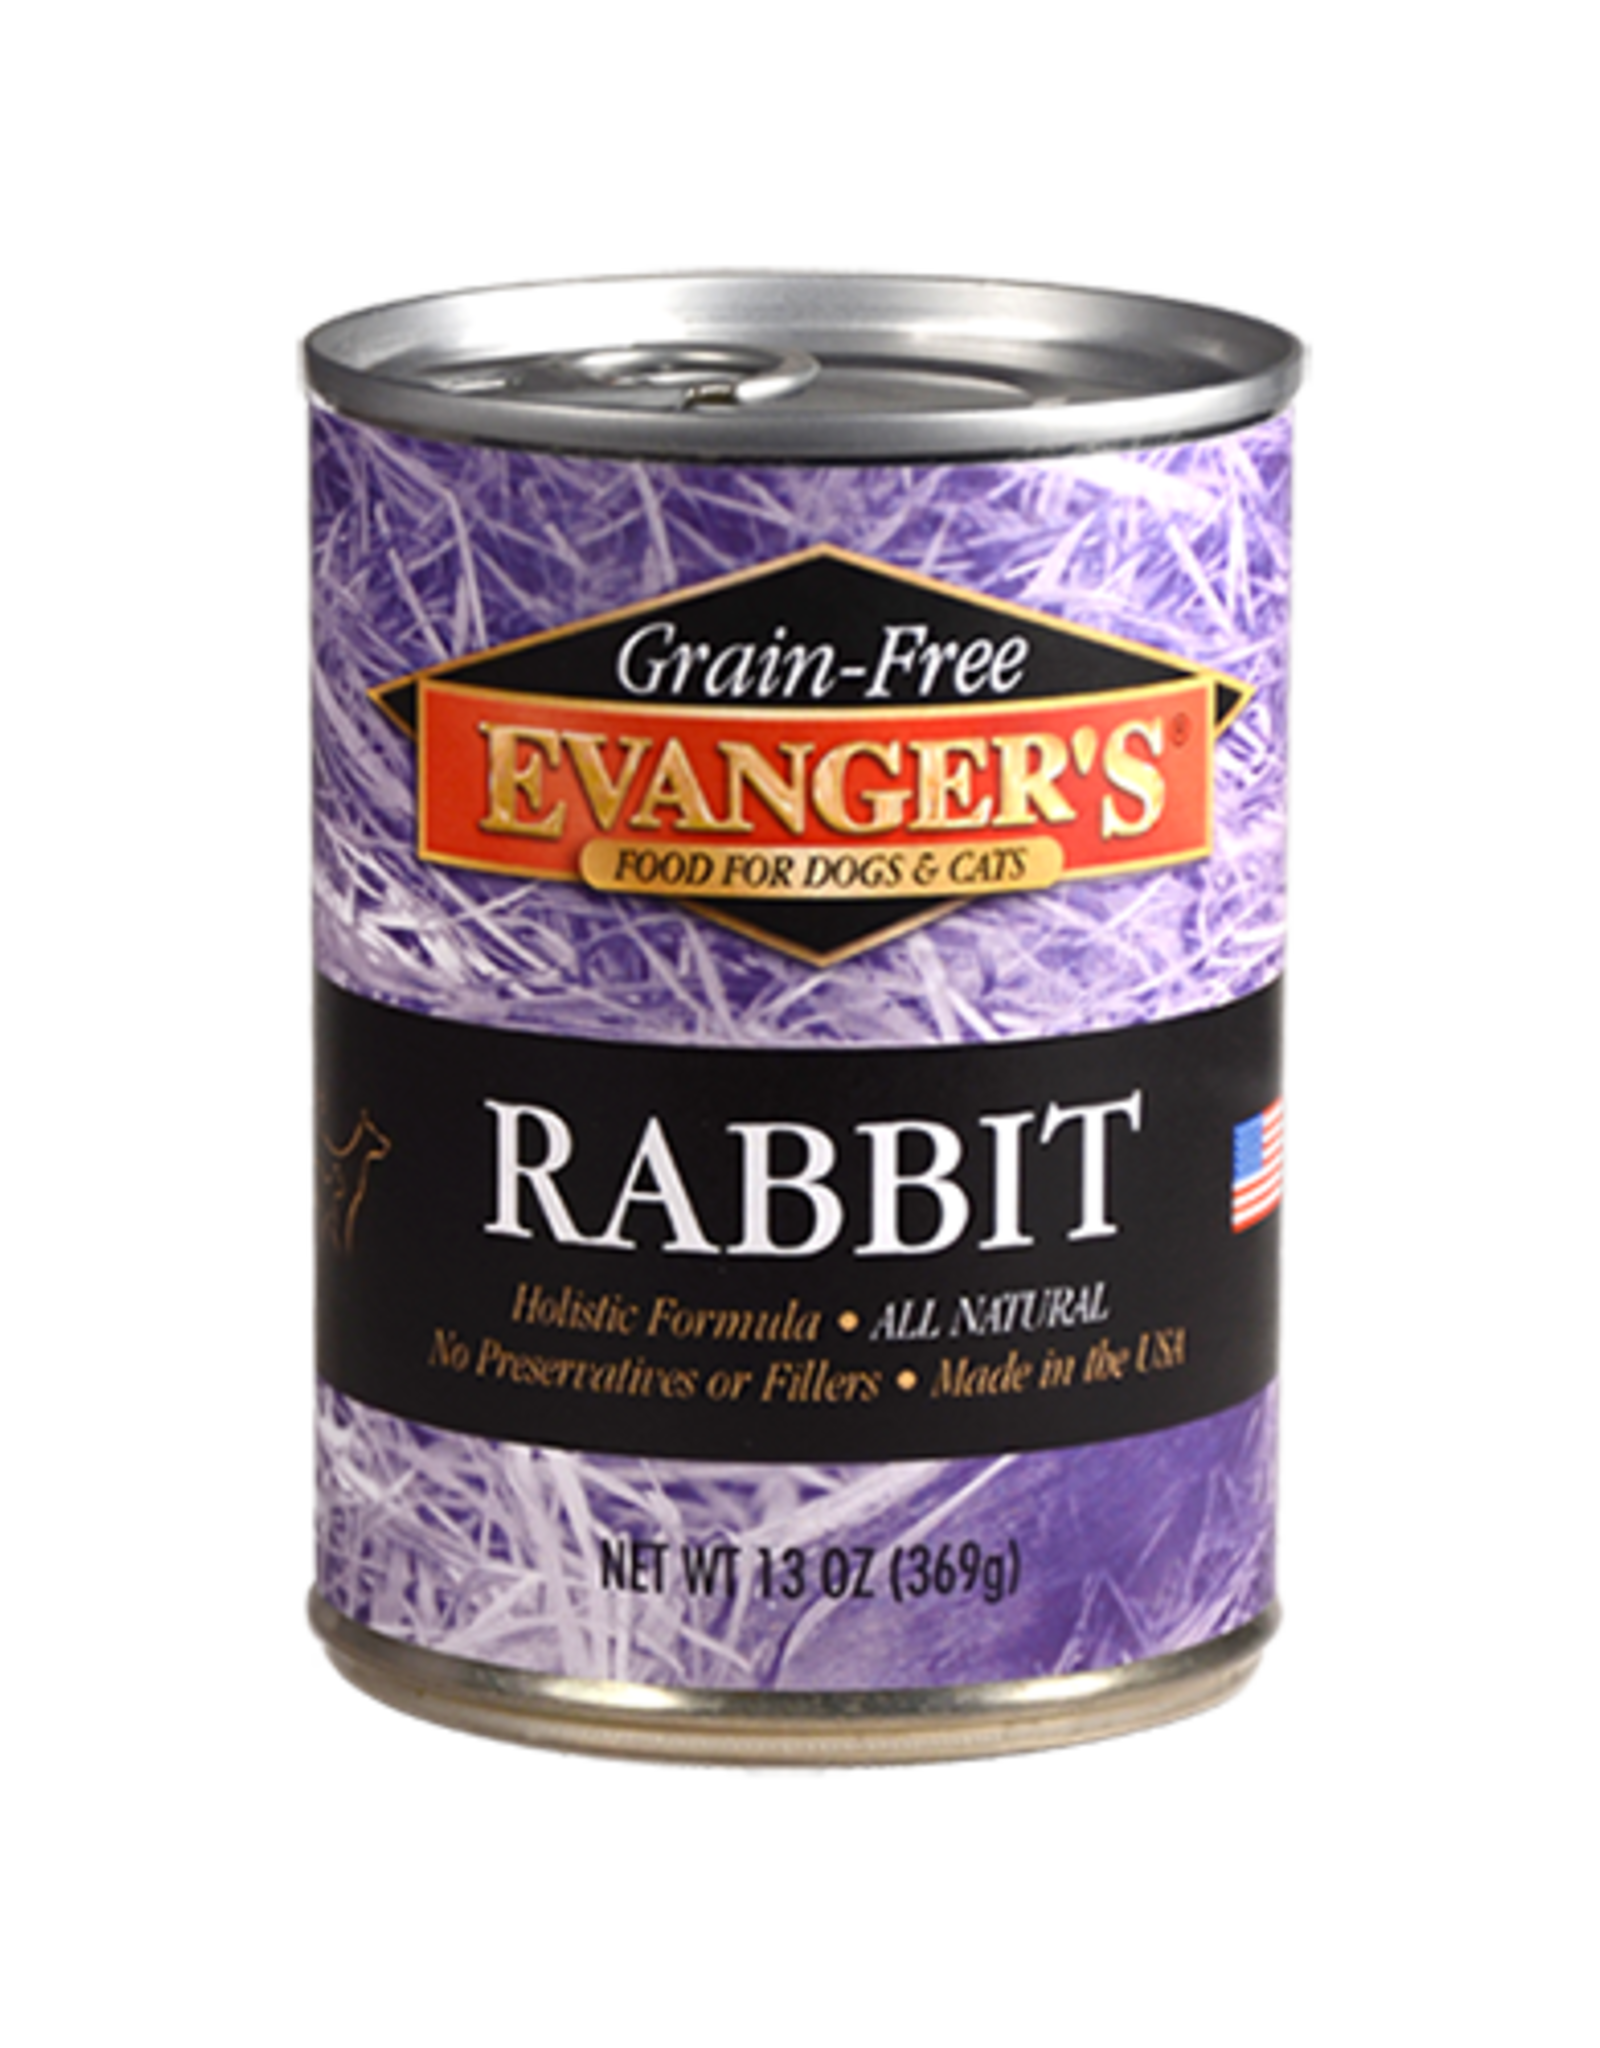 EVANGER'S EVANGERS GRAIN FREE RABBIT 13OZ CAN